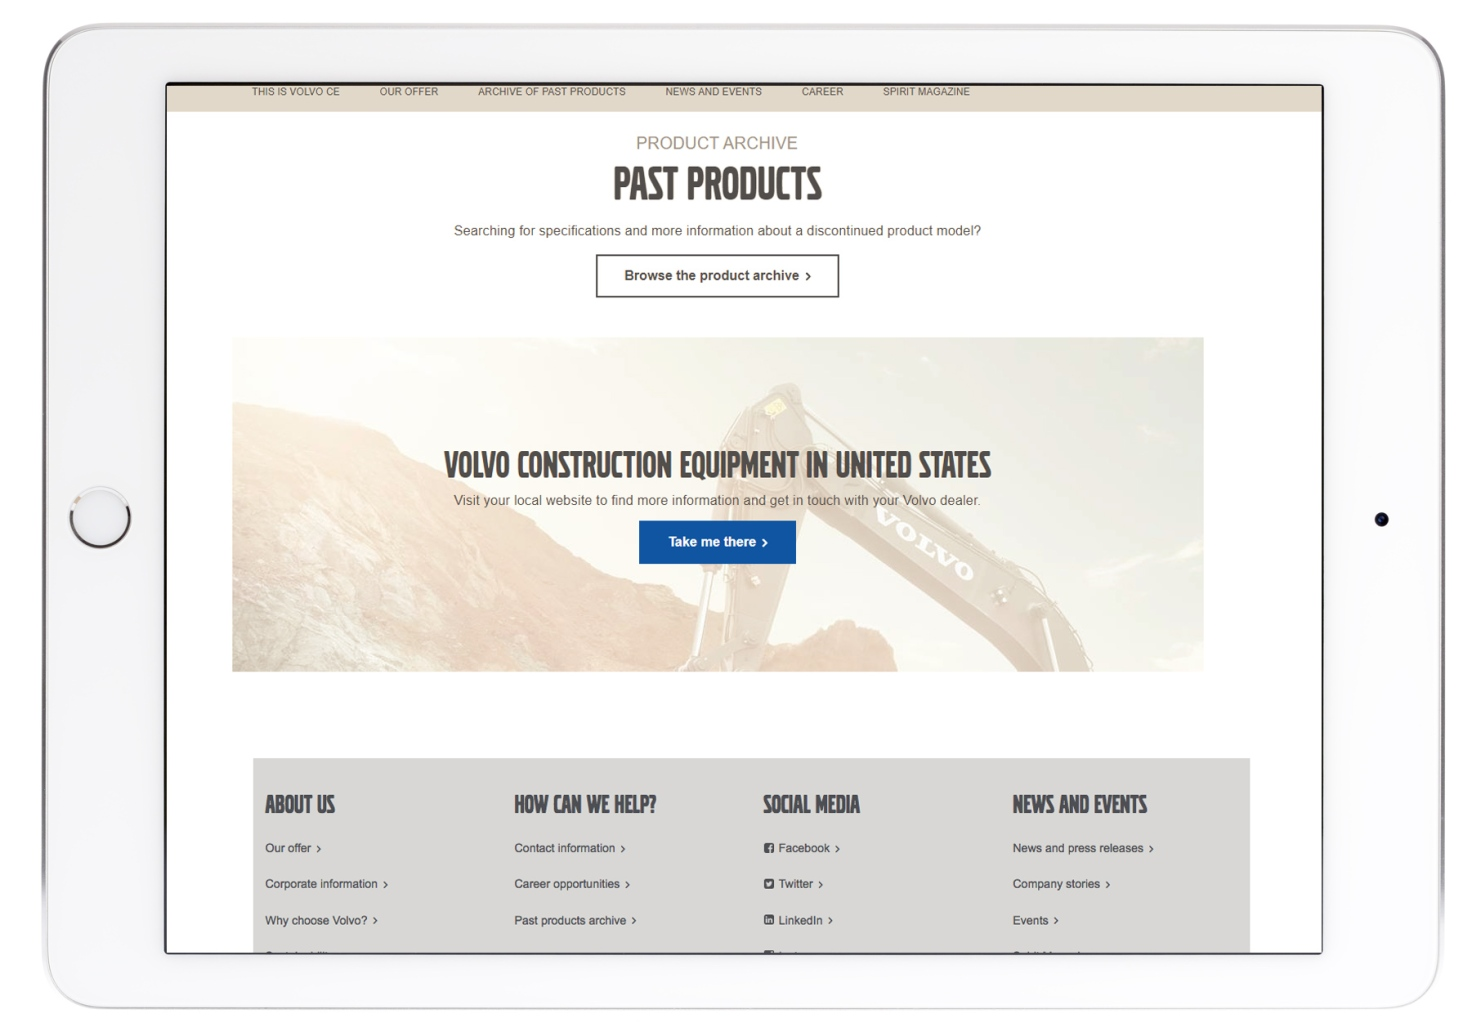 volvo-global-site-linking-to-us2